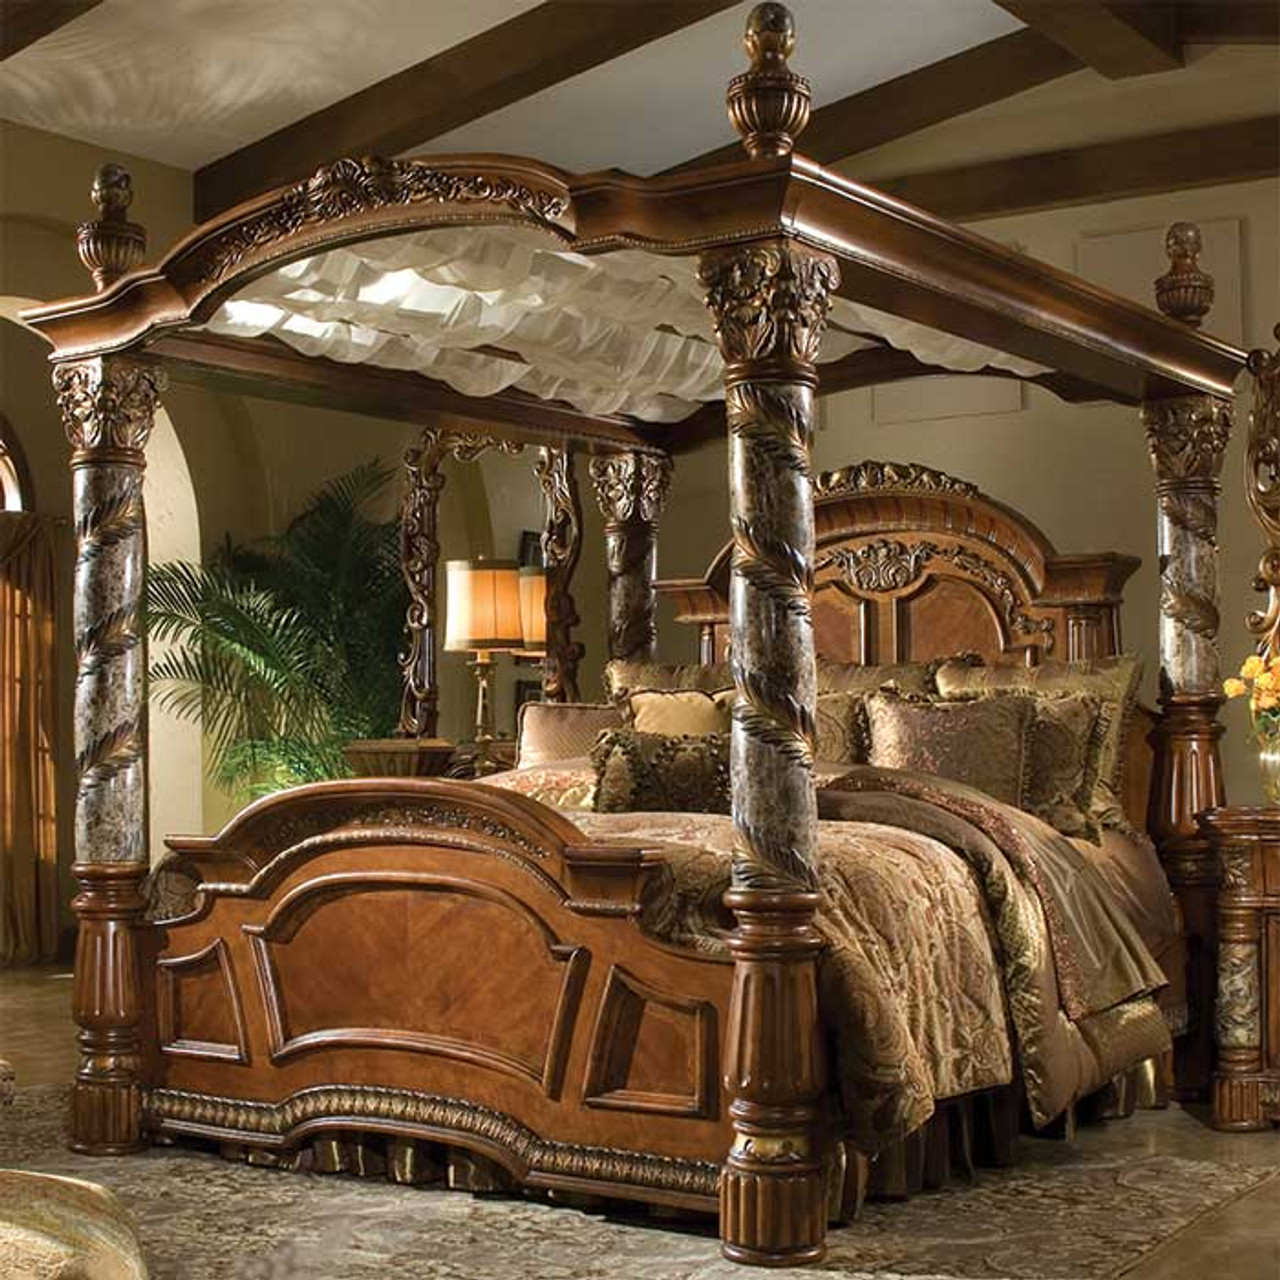 Canopy Bed.Renaissance King Canopy Bed